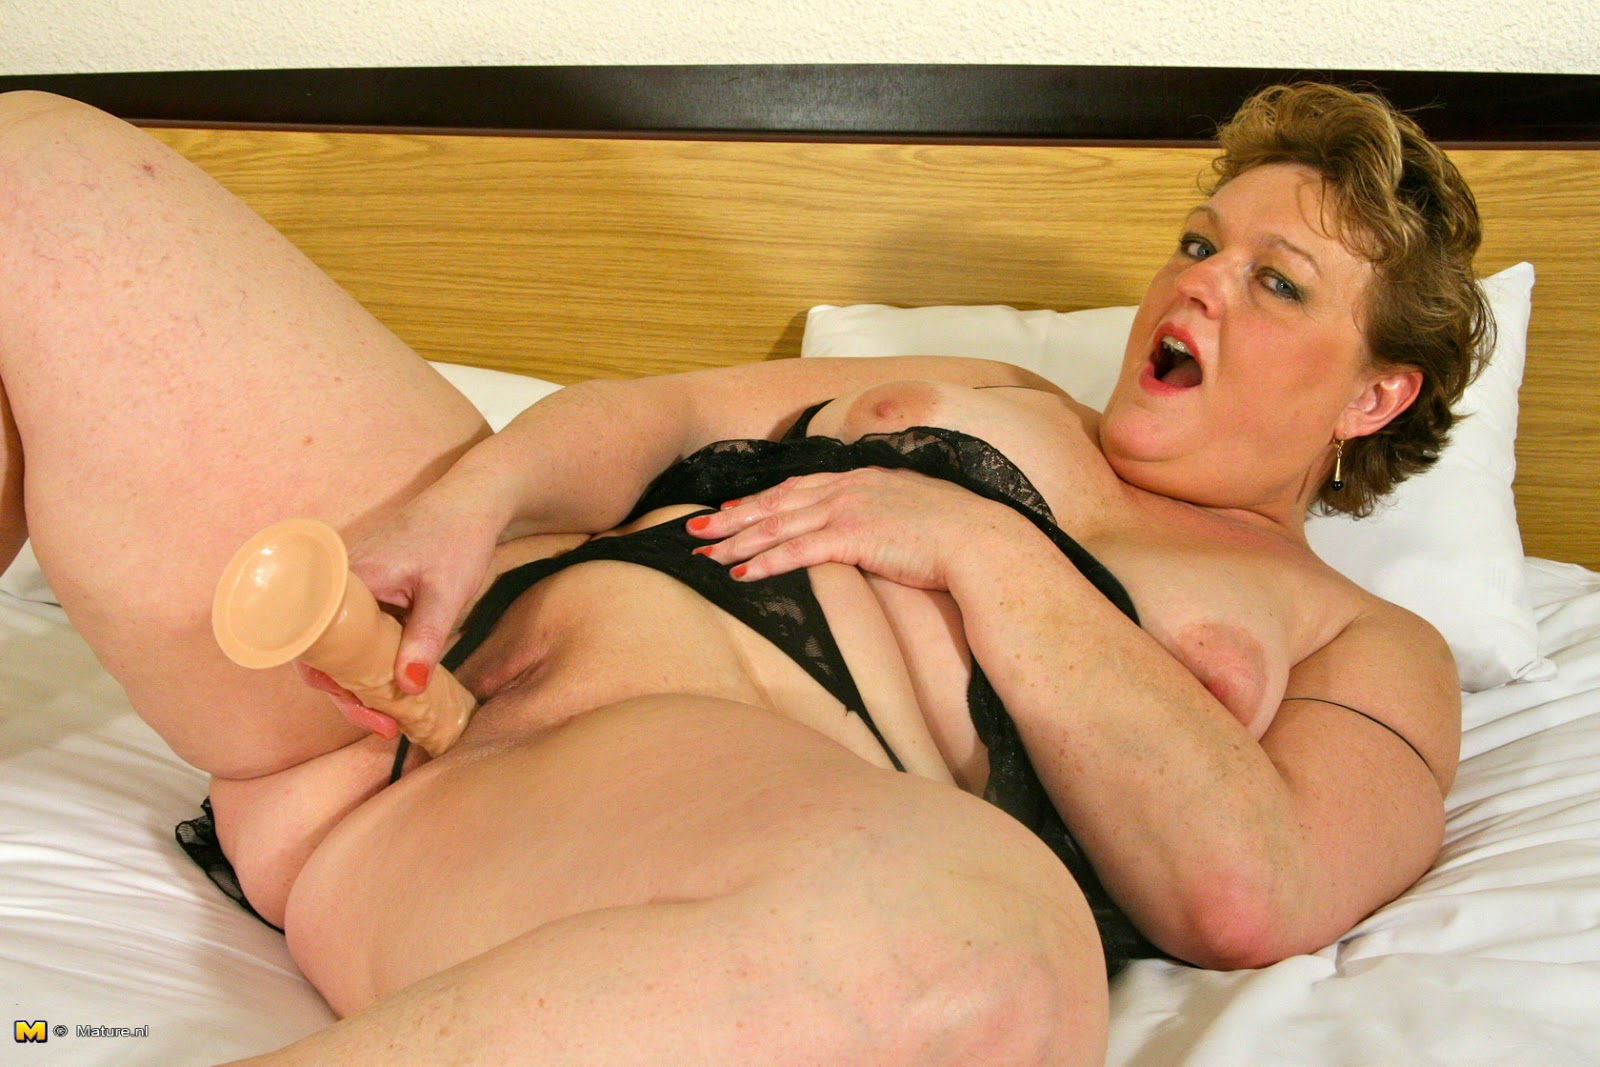 Commit older women only playing with a dildo join